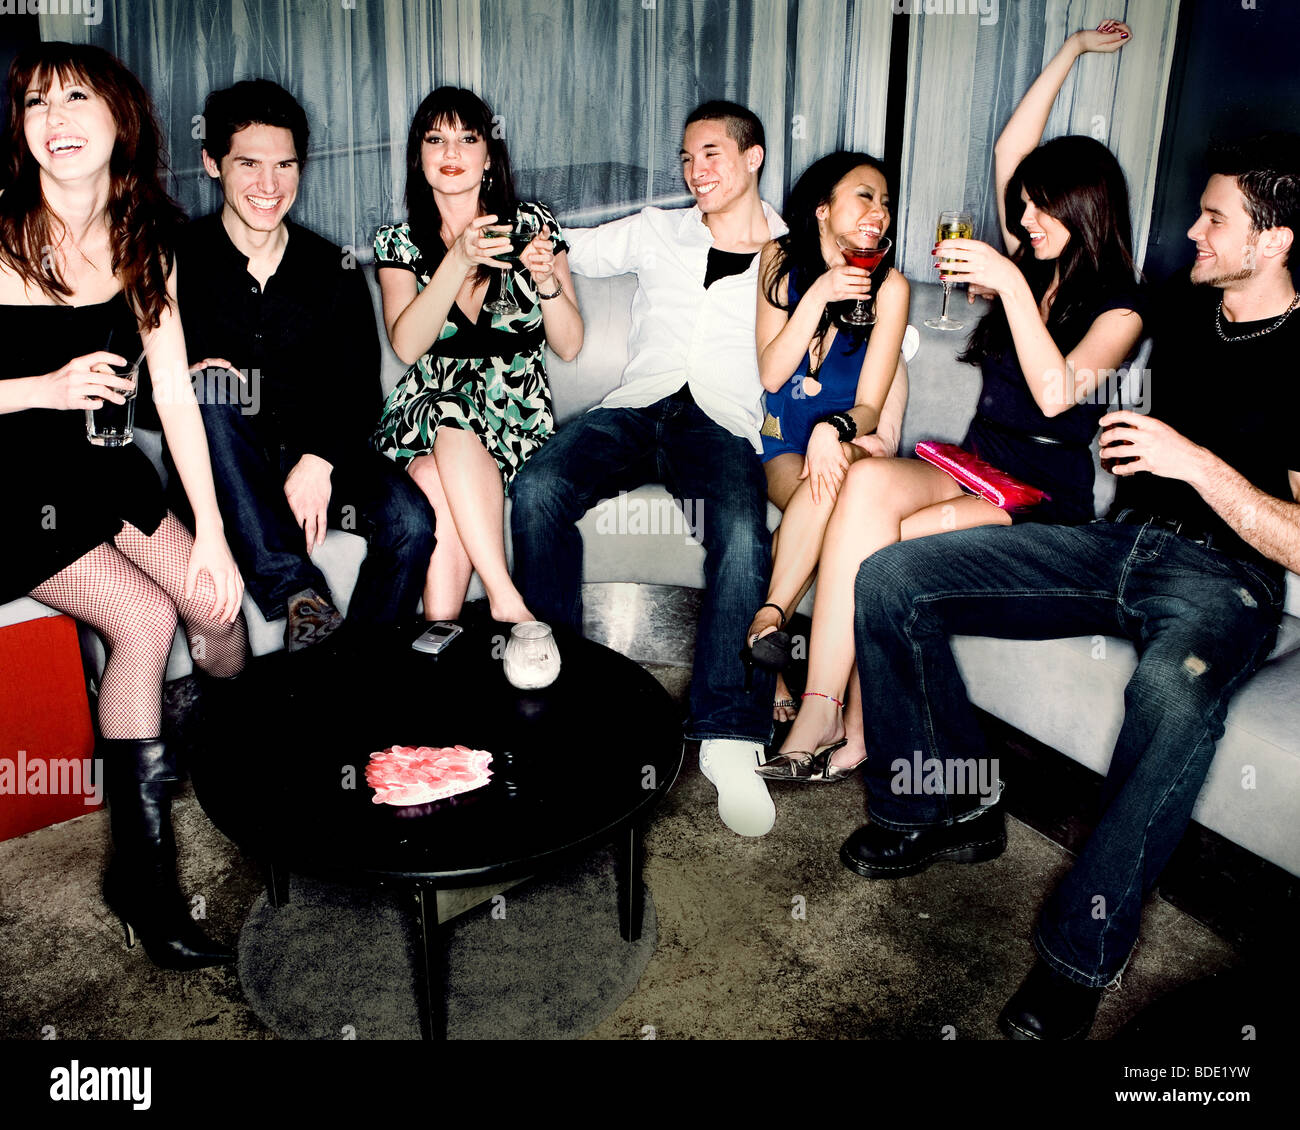 Friends at club, partying. - Stock Image